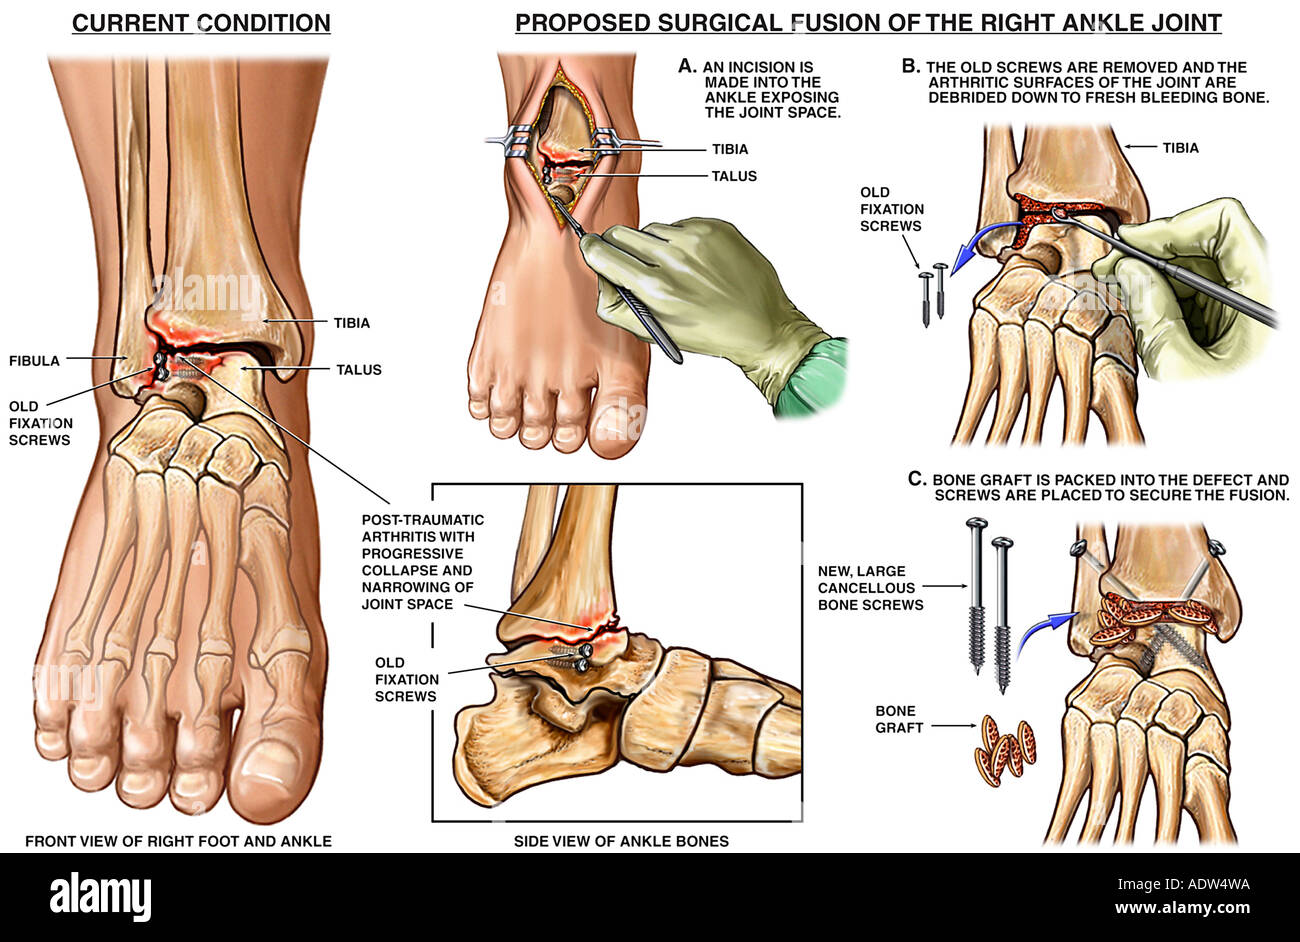 Ankle Joint Injury with Fusion Surgery - Stock Image